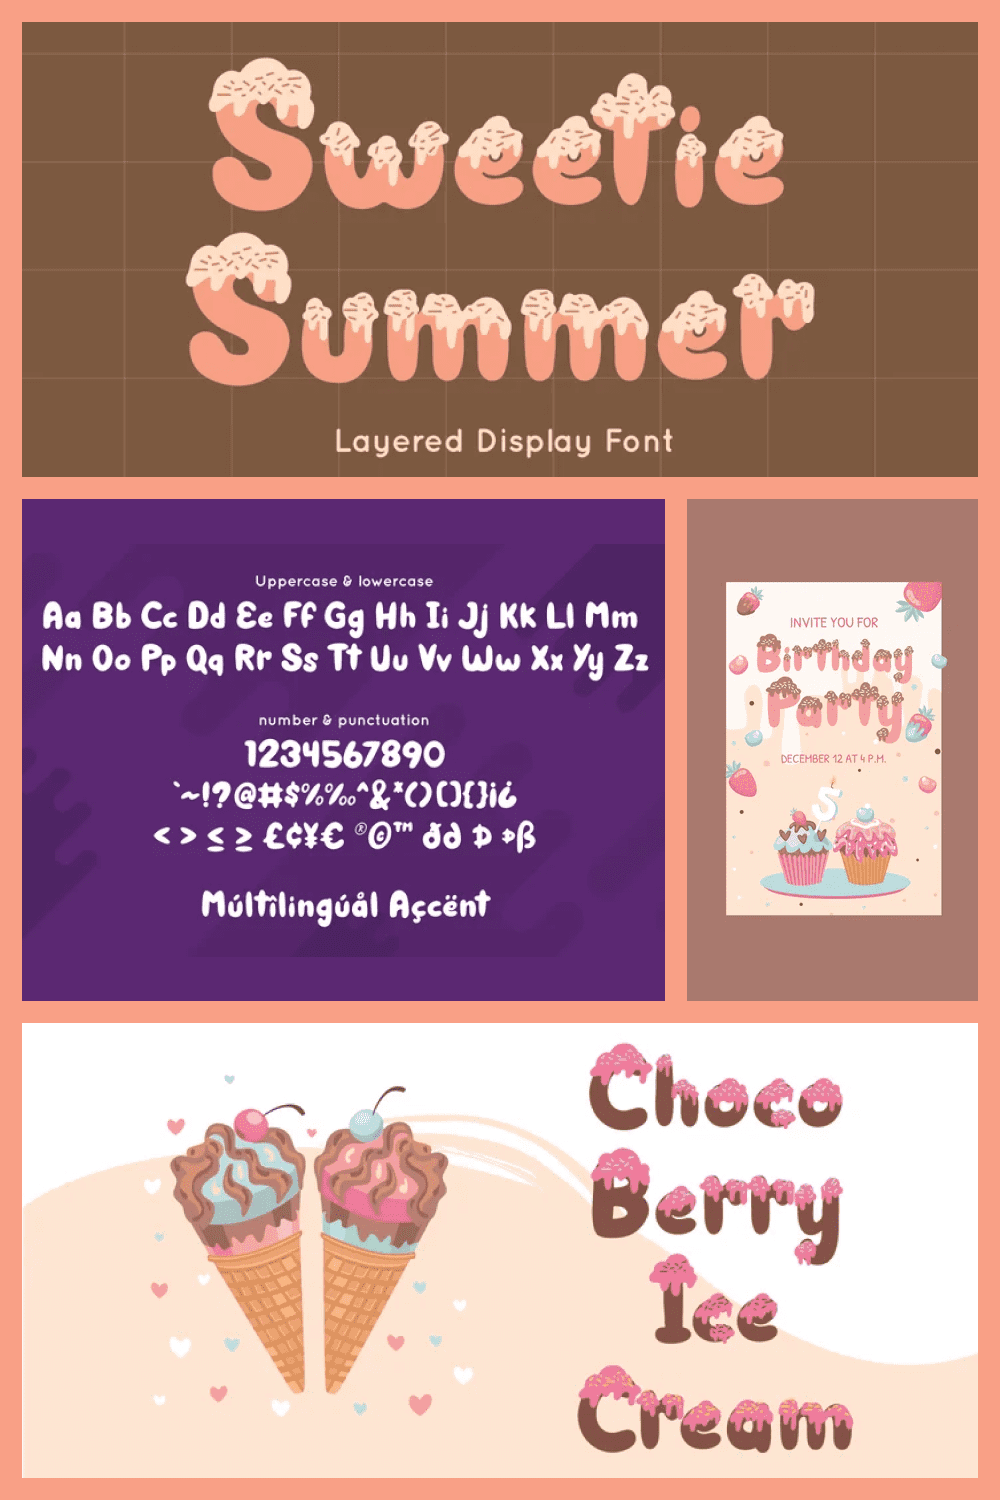 Sweetie Summer inspired by summer ice cream. Perfect display font for summer business, summer flyer, summer sign and summer decor.